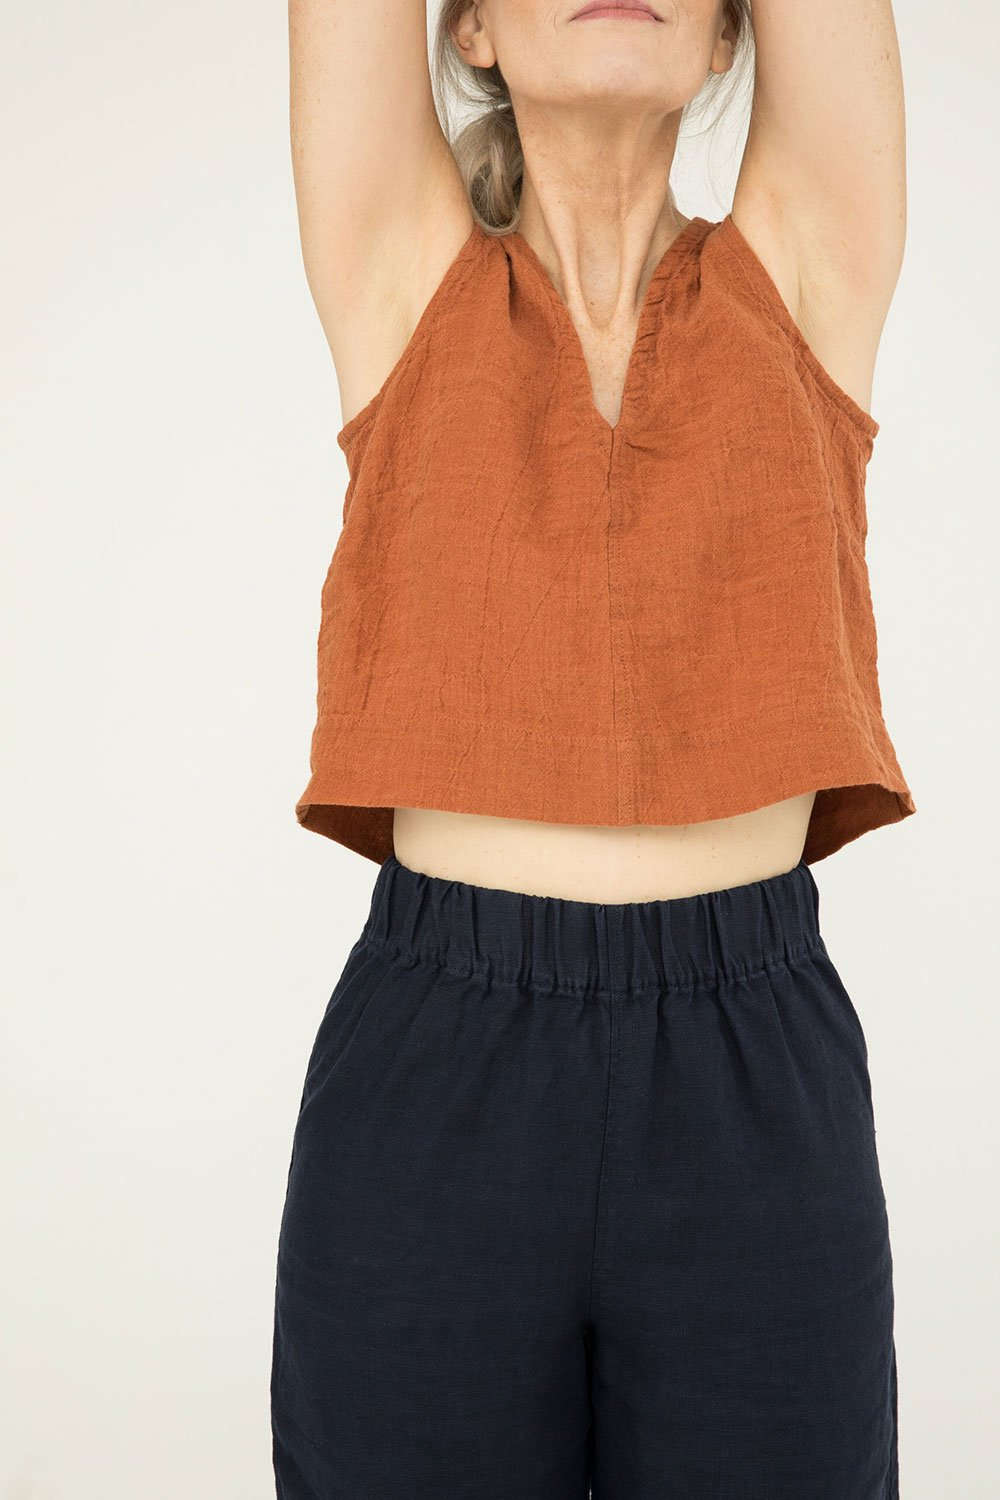 Polly Crop in Linen Gauze Amber - Kendall-Small